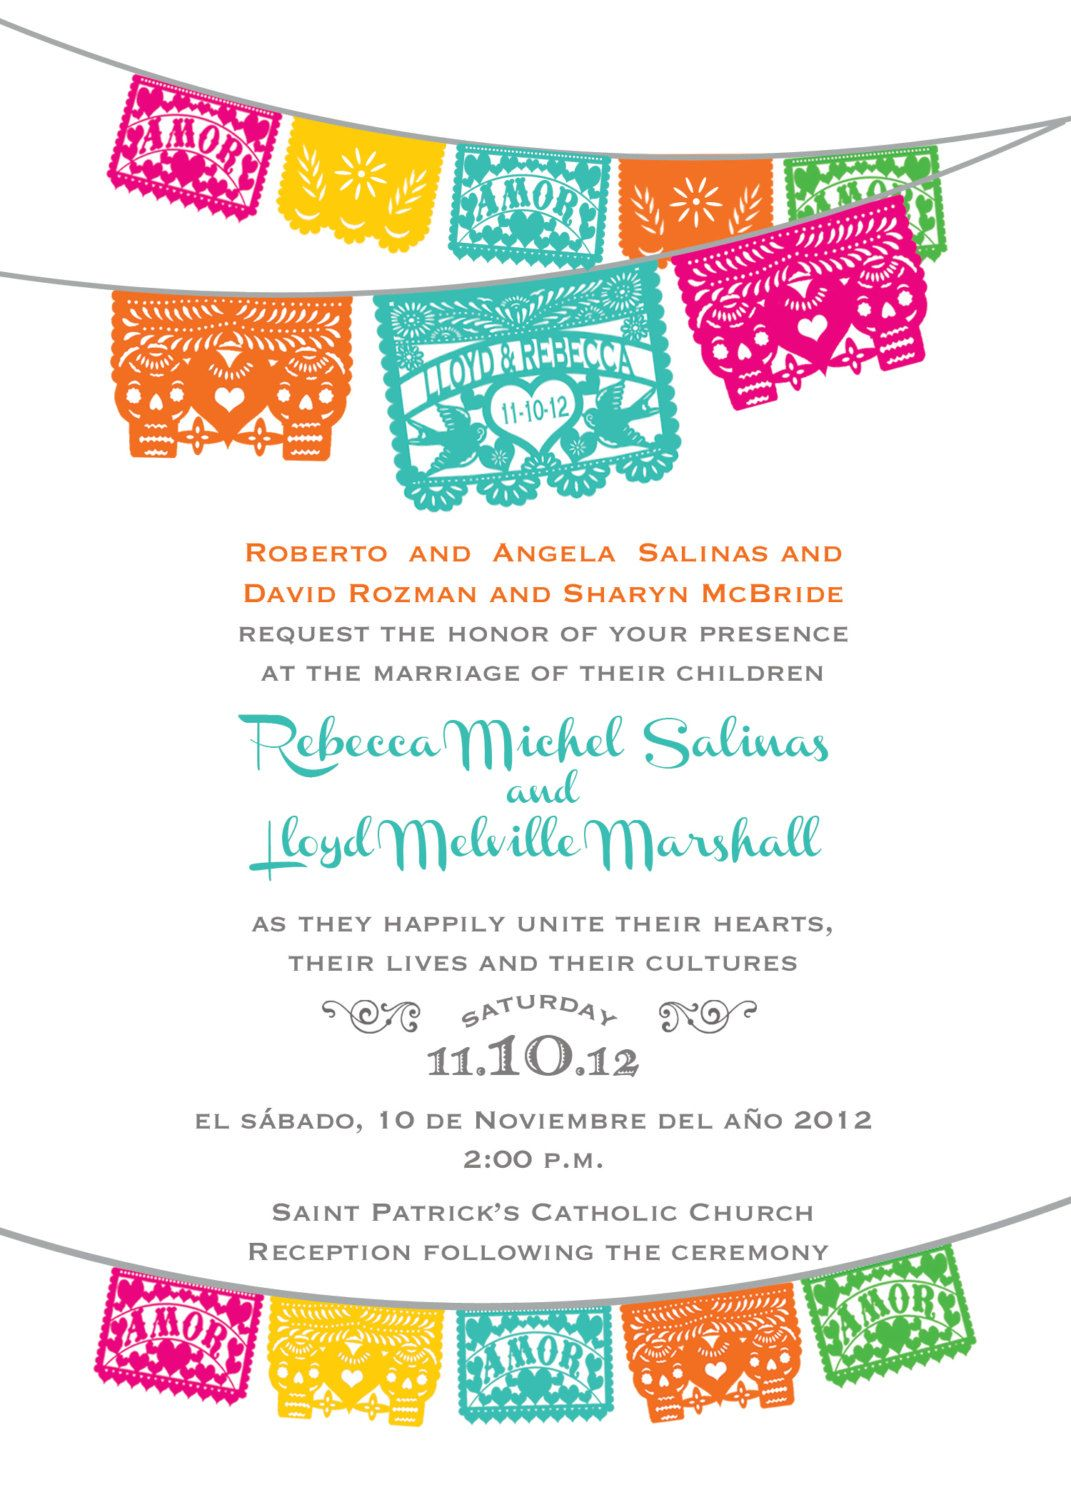 Day Of The Dead Skull Papel Picado Fiesta Wedding Invitation And Response  RSVP Cards I Design